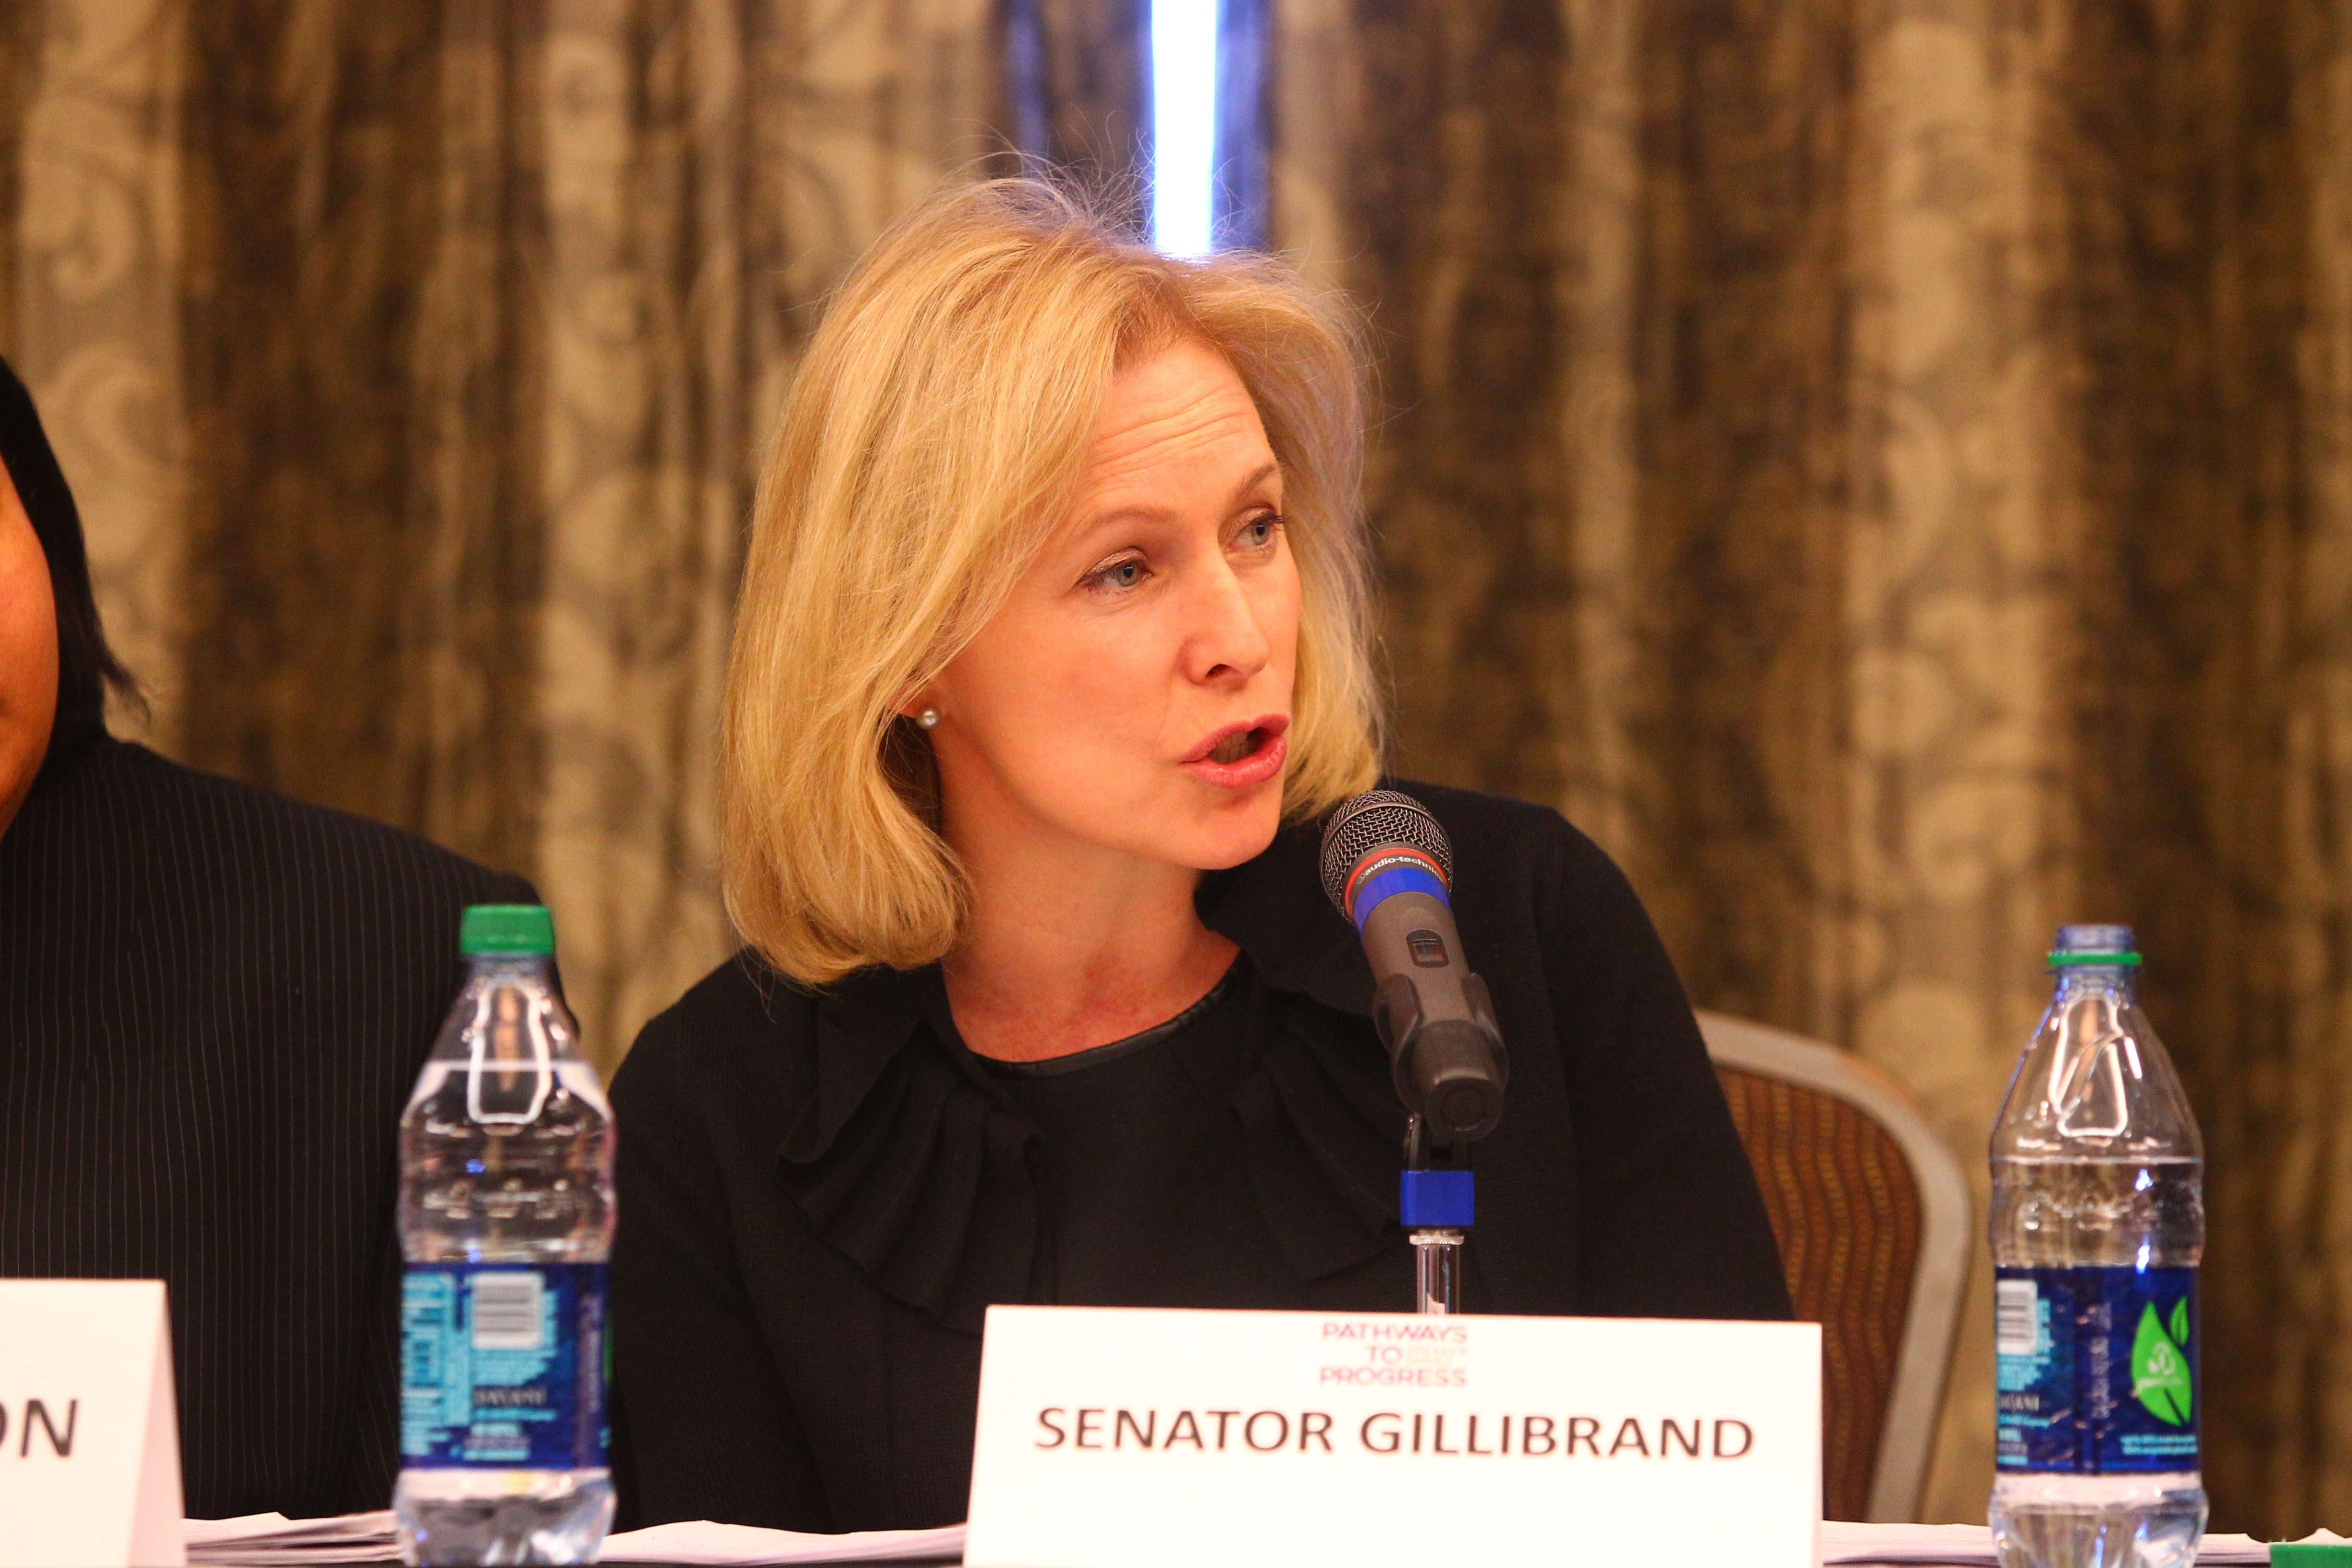 Sen. Kirsten Gillibrand speaks at the WNY Women's Foundation Pathways to Progress Speaker Series Friday, outlining a five-point plan to improve the lot of middle-class working women.